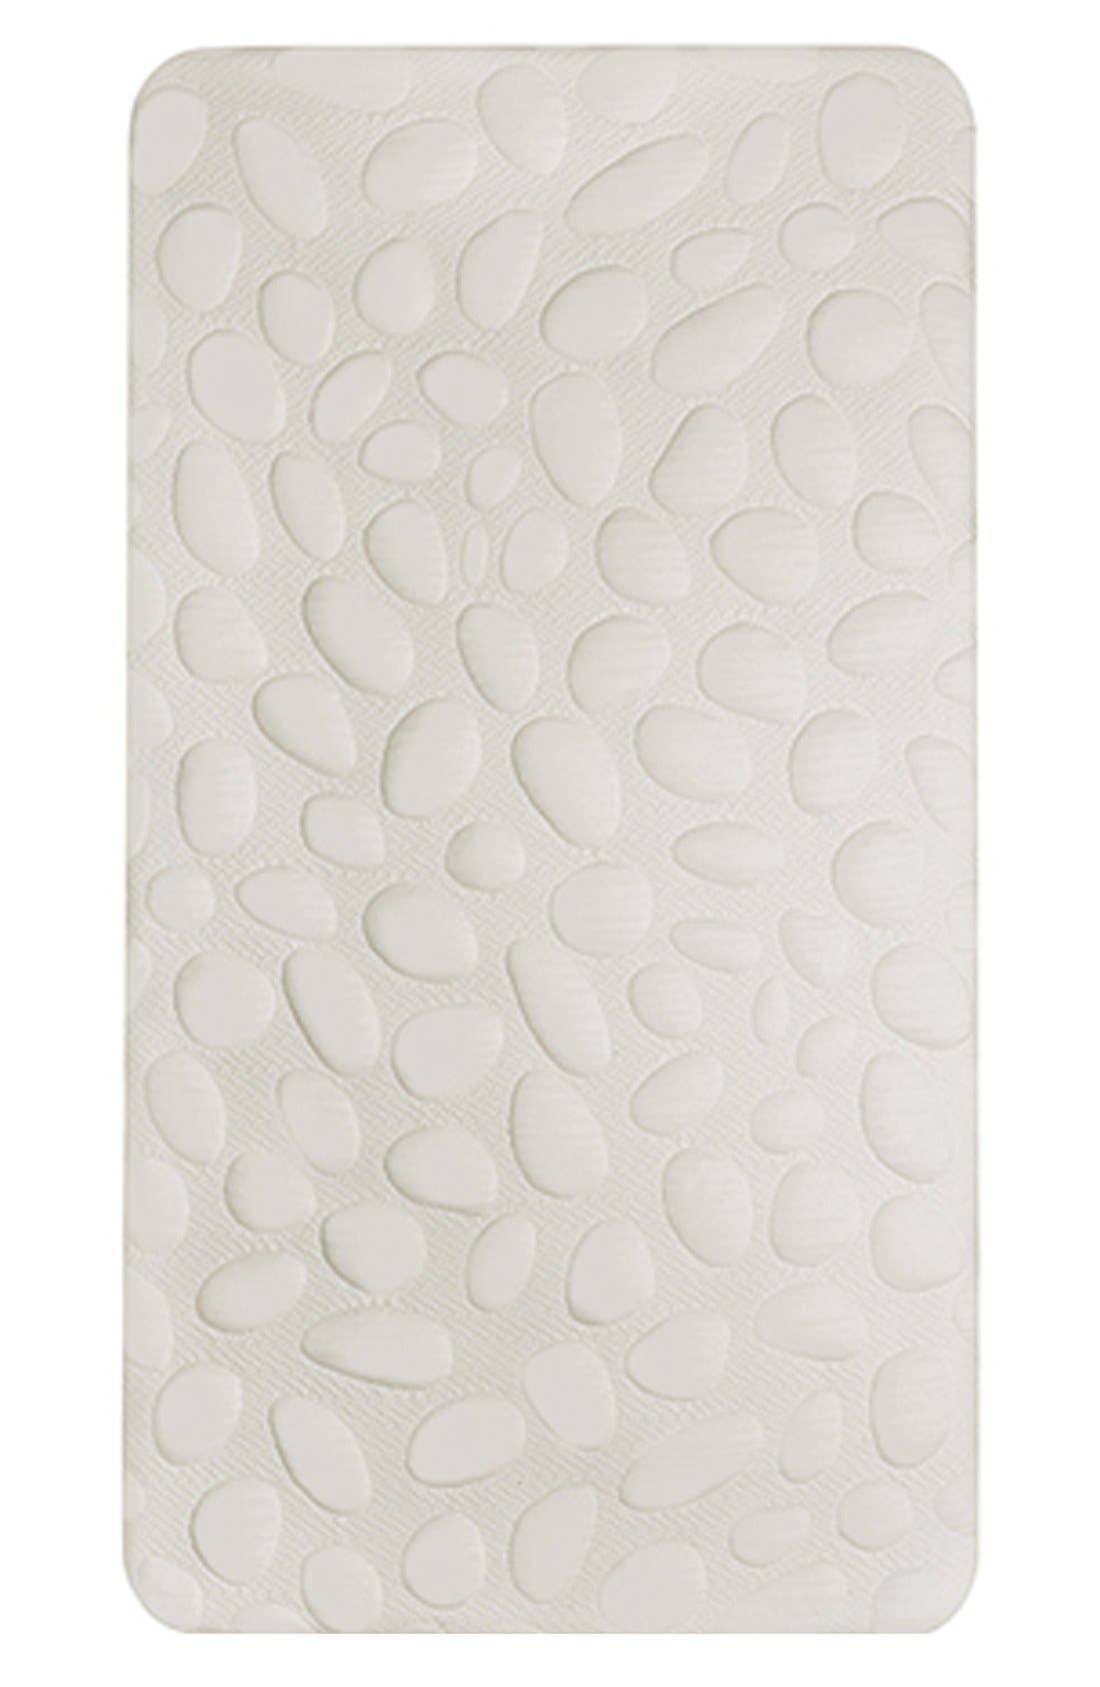 'Pebble Air' Crib Mattress,                             Main thumbnail 1, color,                             CLOUD